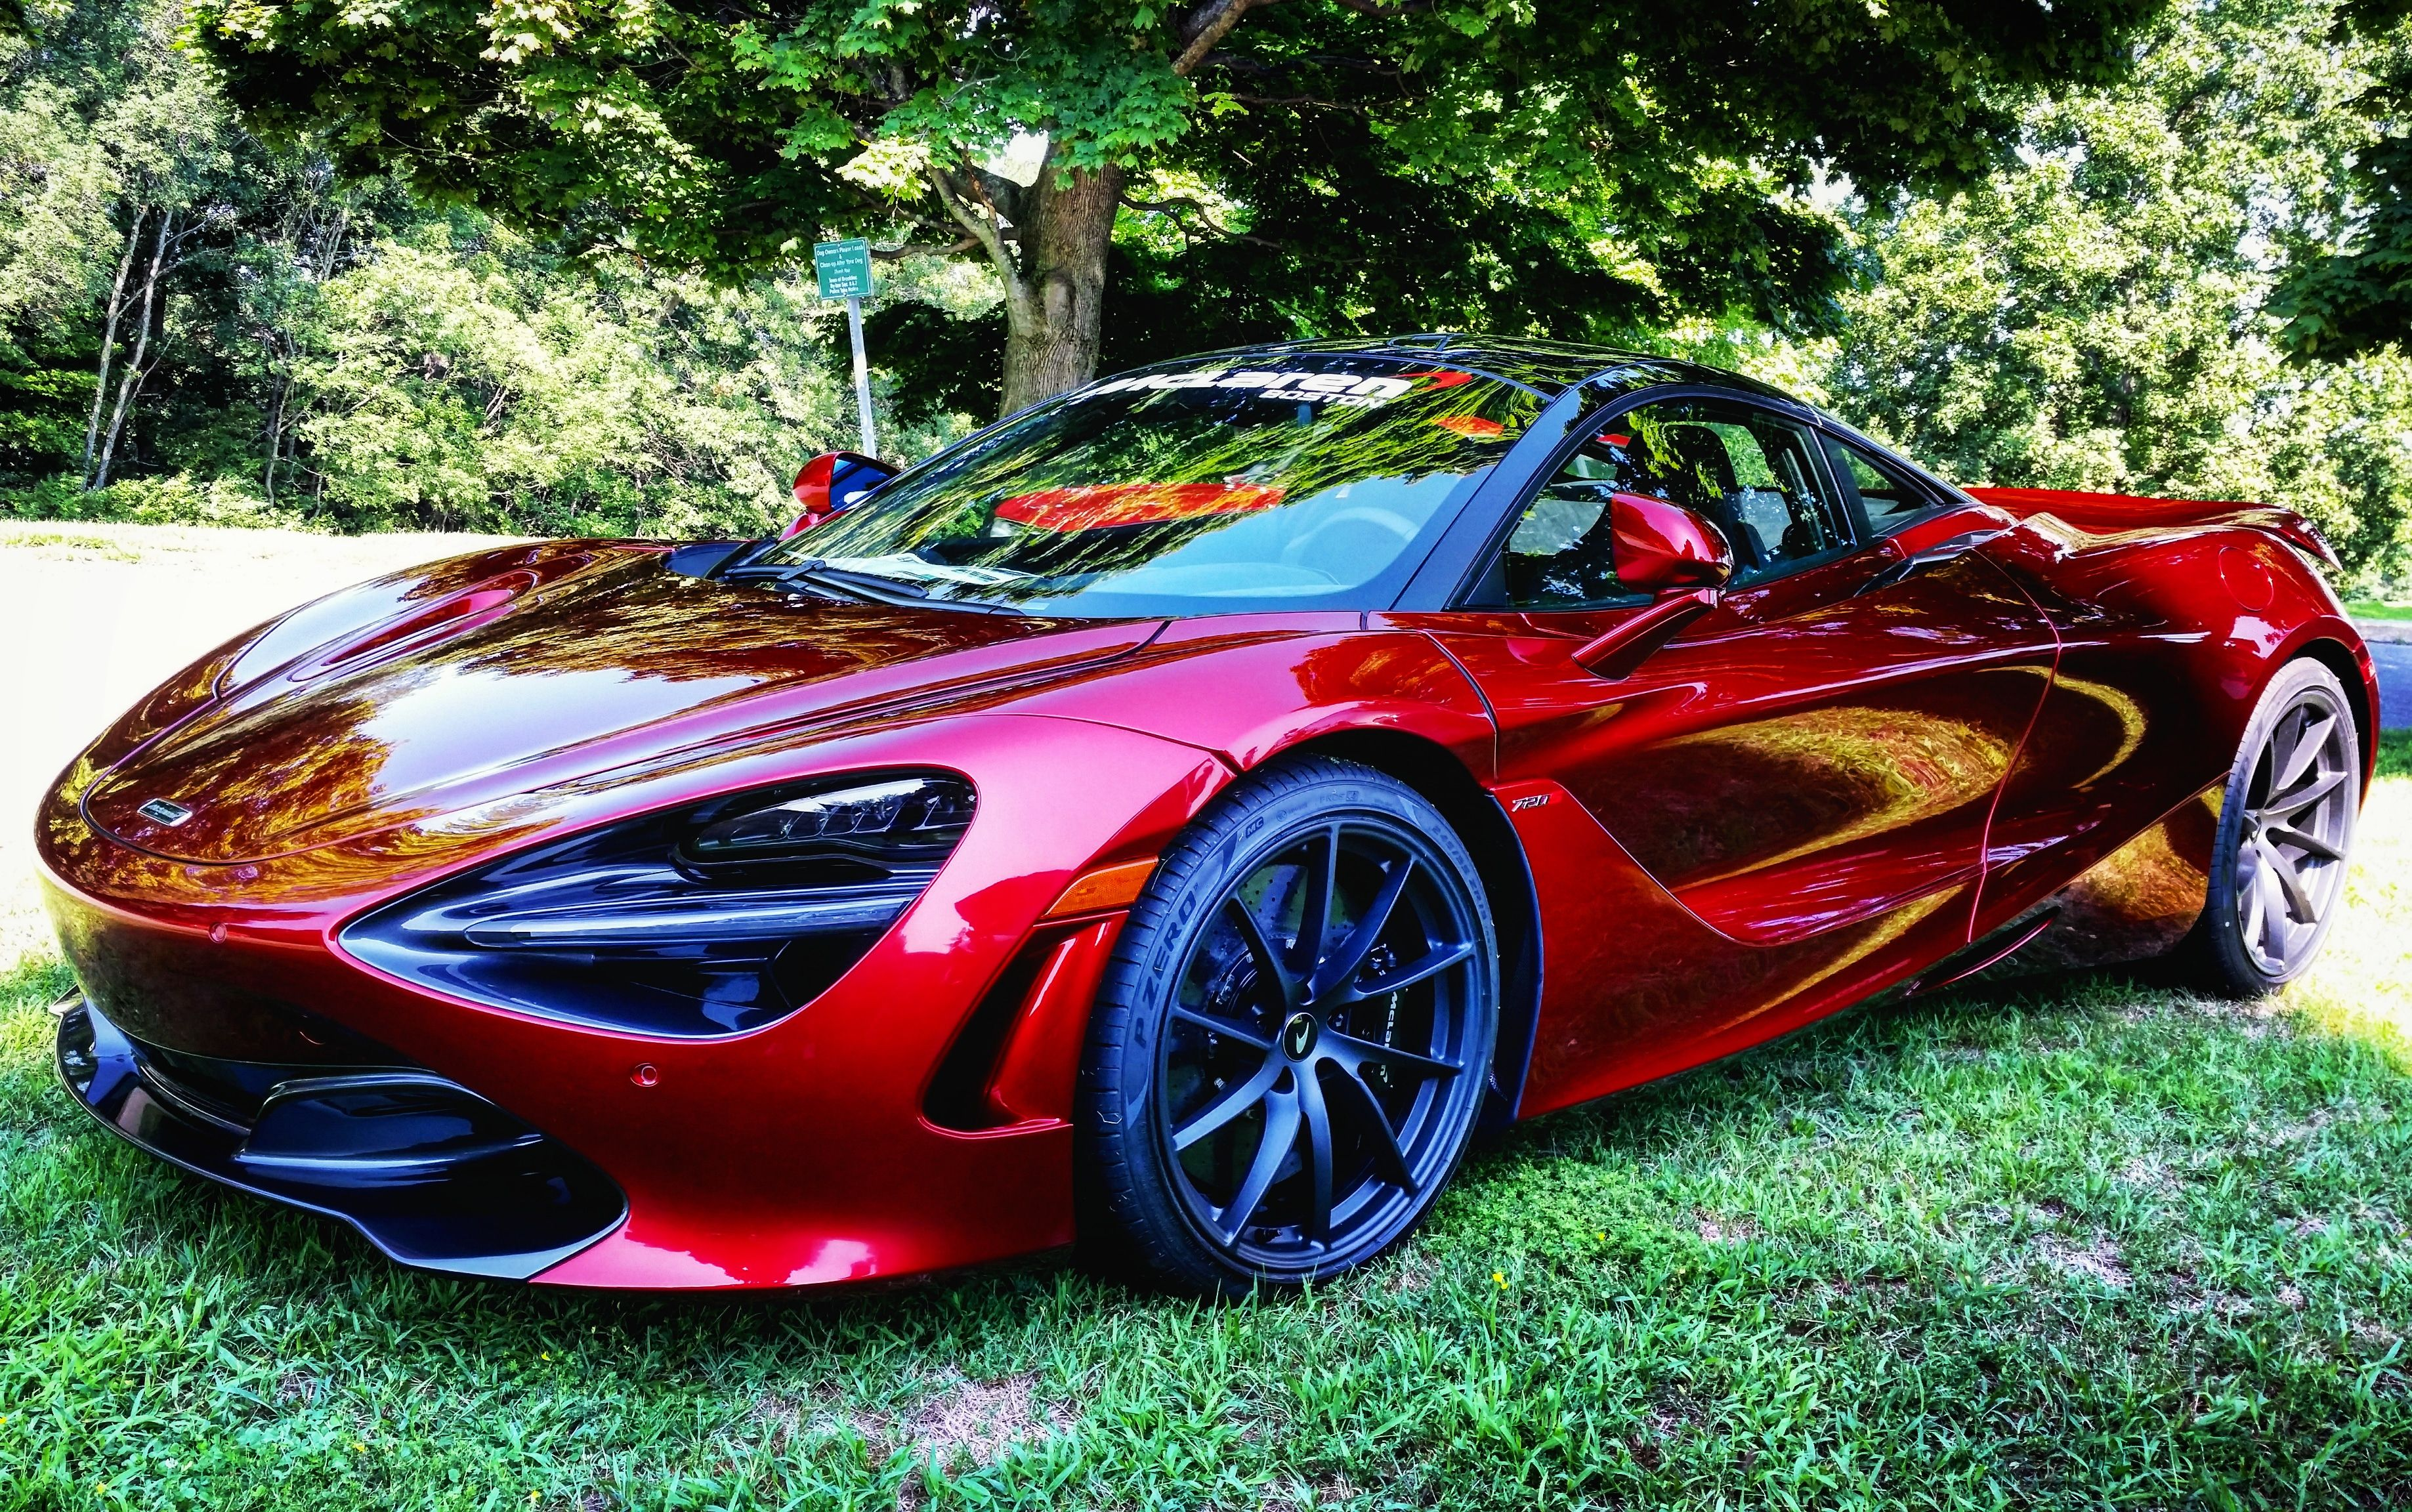 Mclaren 720s Best Looking Mclaren In My Opinion Oc Posted By Thefatcat89 Cars Motorcycles Luxury Cars Car Pictures Mclaren